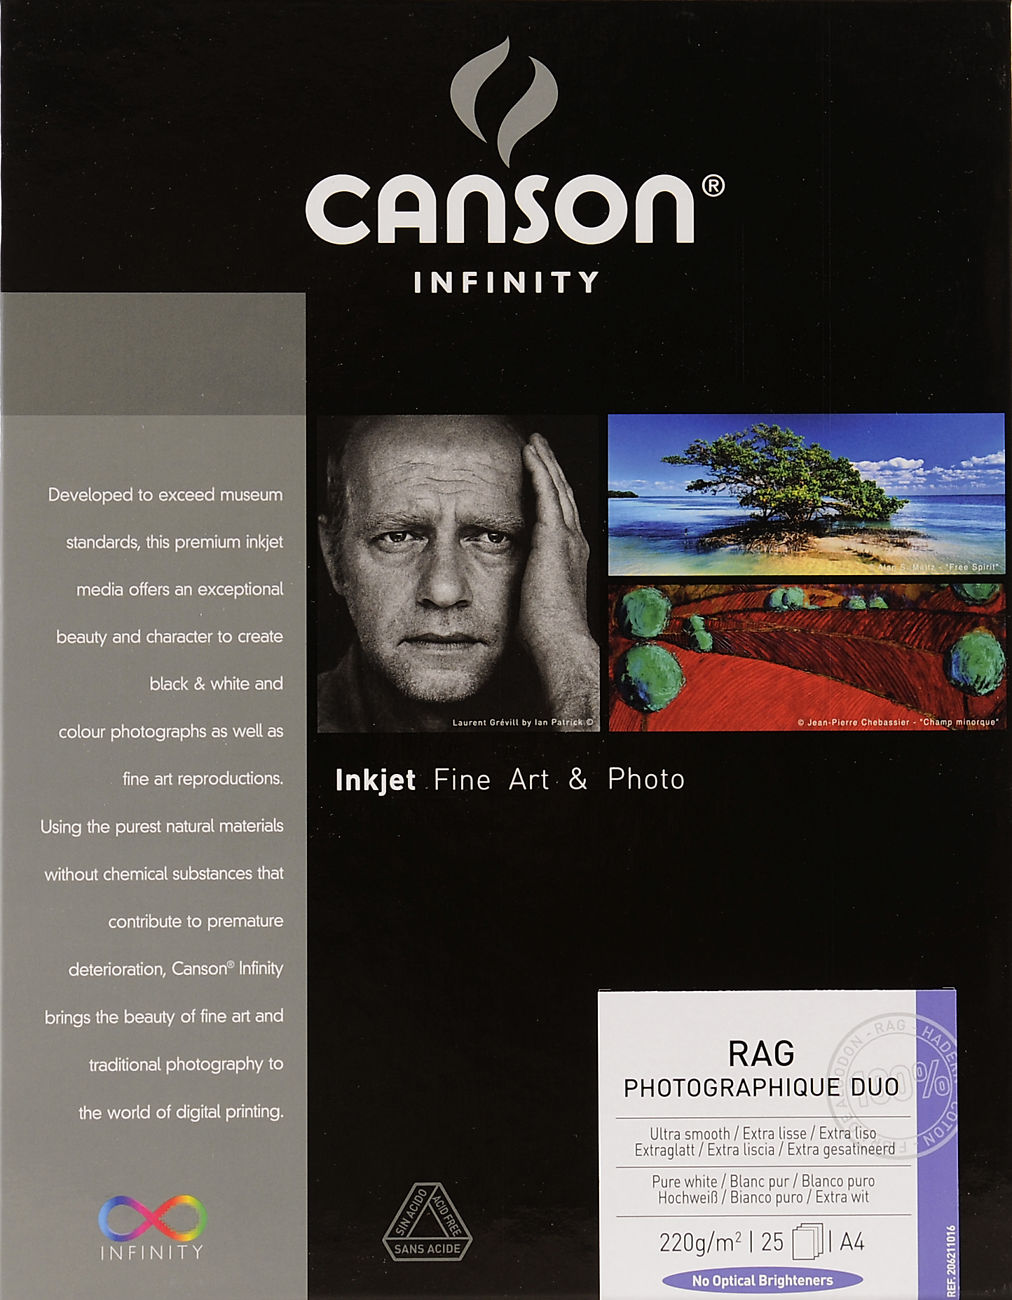 Canson Infinity Rag Photographique Duo 220gsm Image